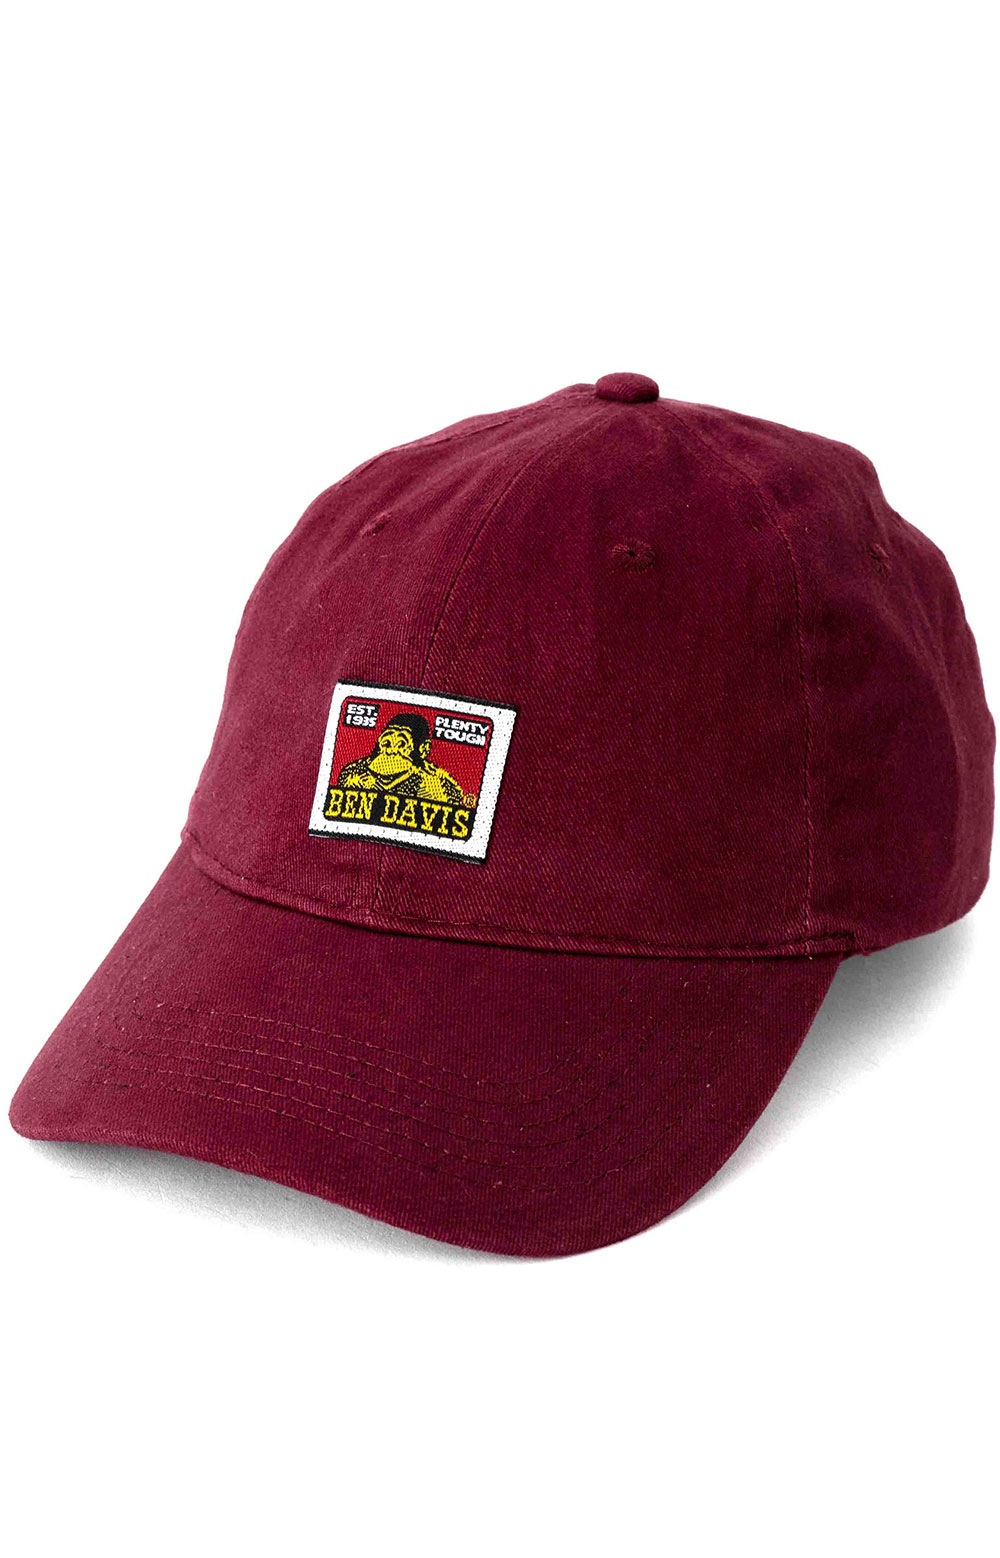 Unstructured Ball Cap - Burgundy